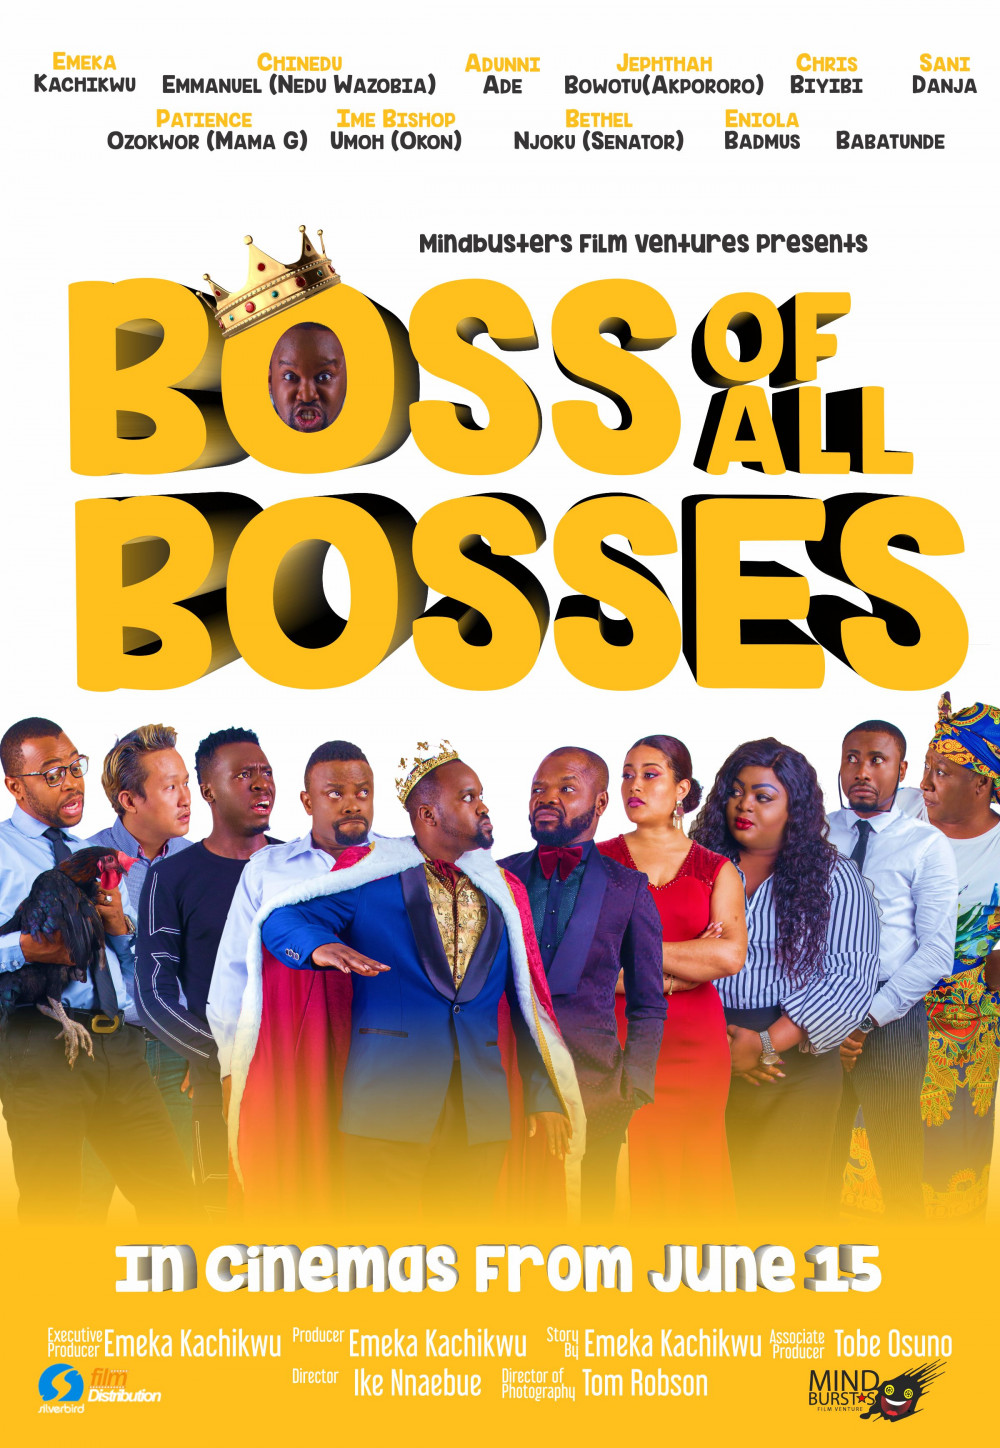 must watch trailer ime bishop adunni ade patience ozokwor eniola